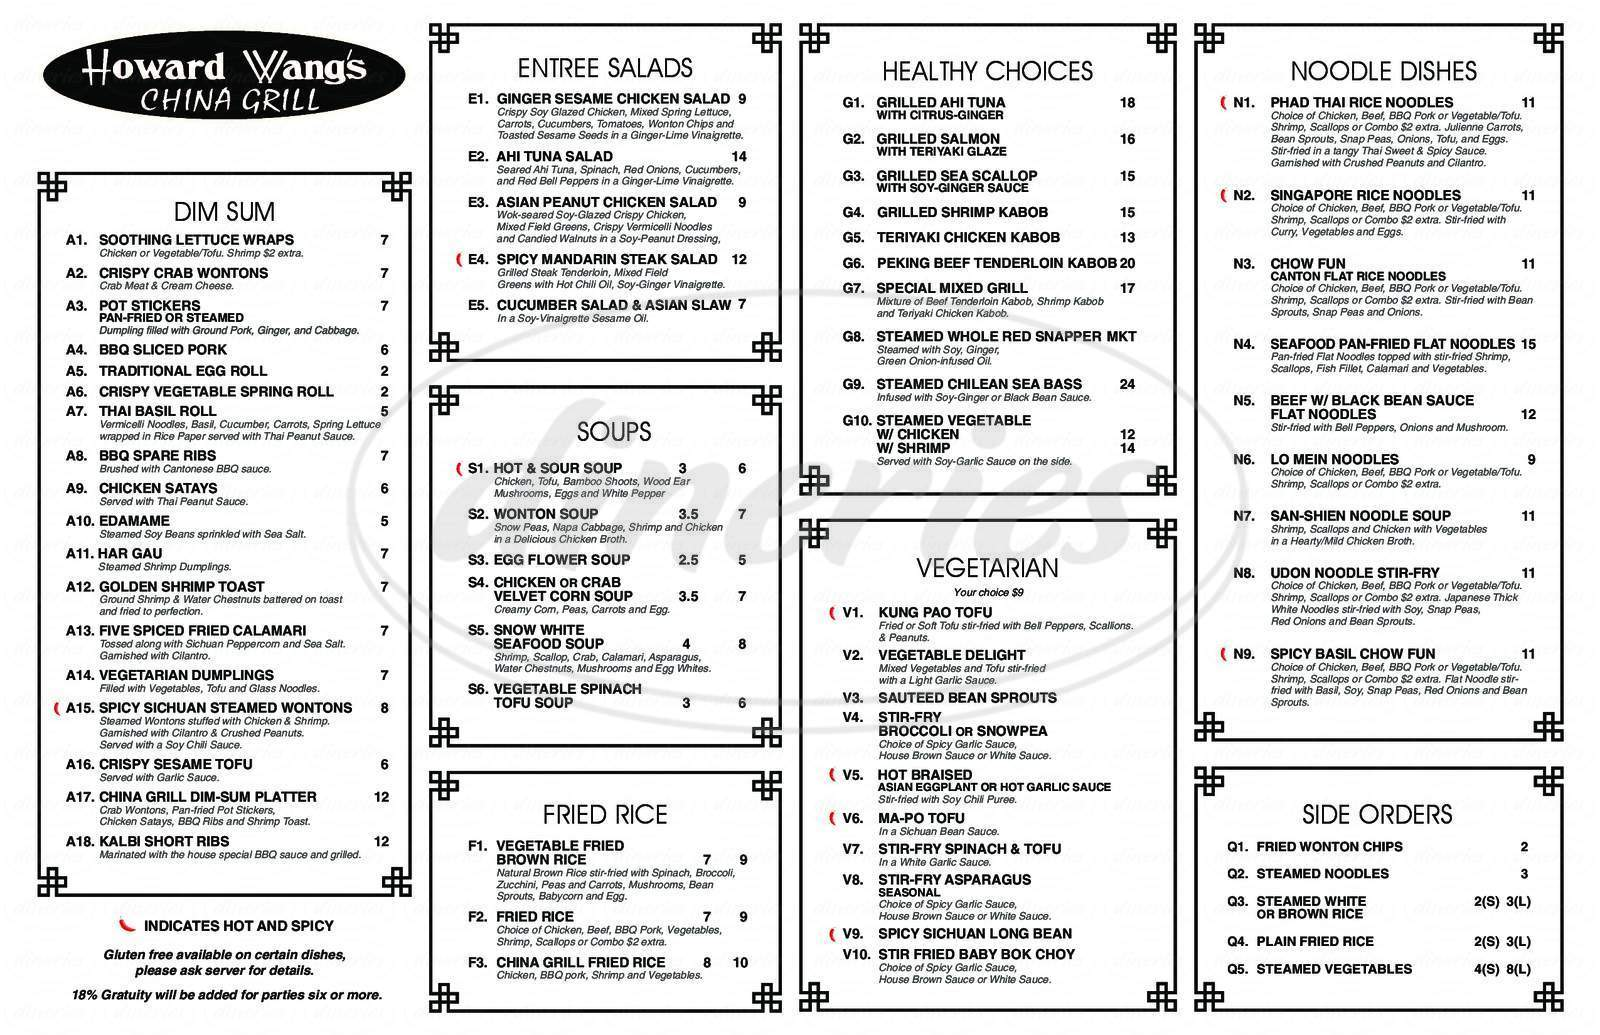 menu for Howard Wang's China Grill